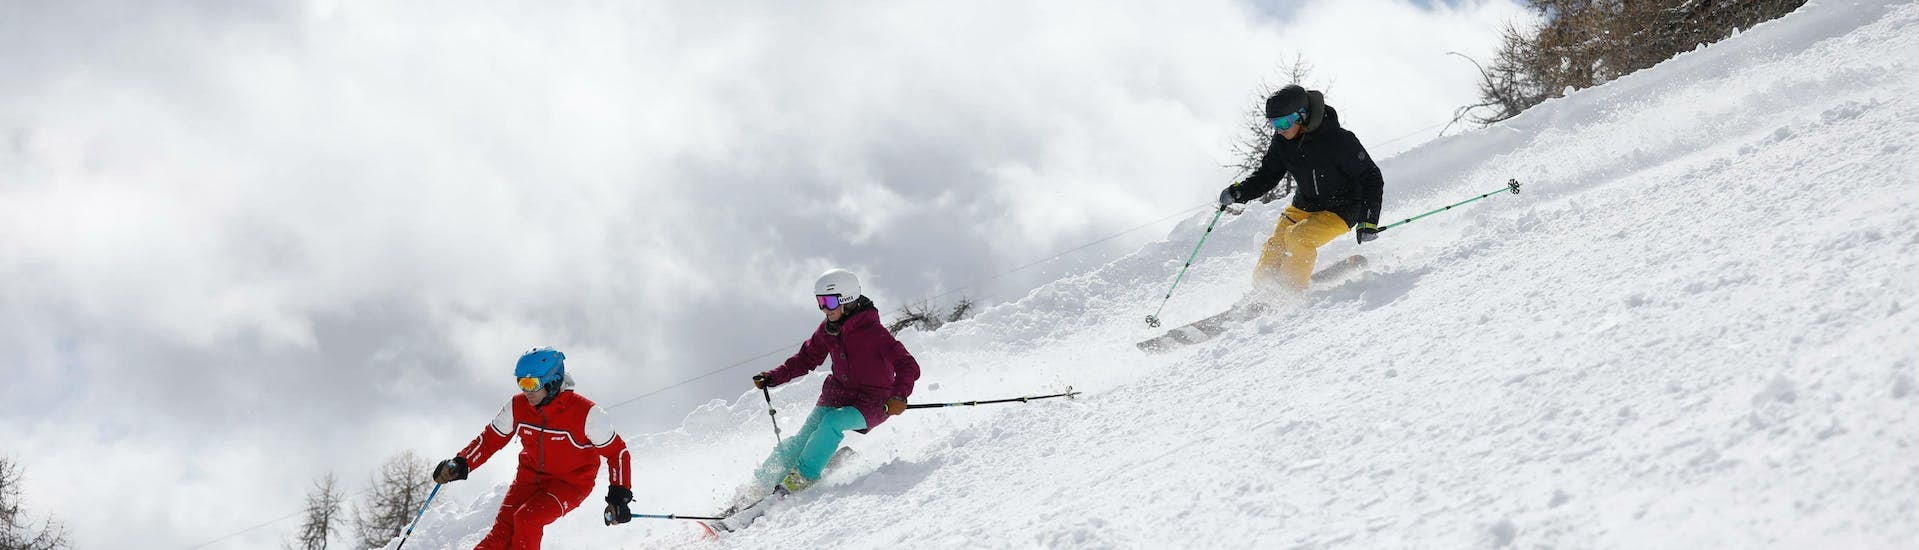 ski-lessons-for-adults-afternoon-holidays-esf-la-plagne-hero